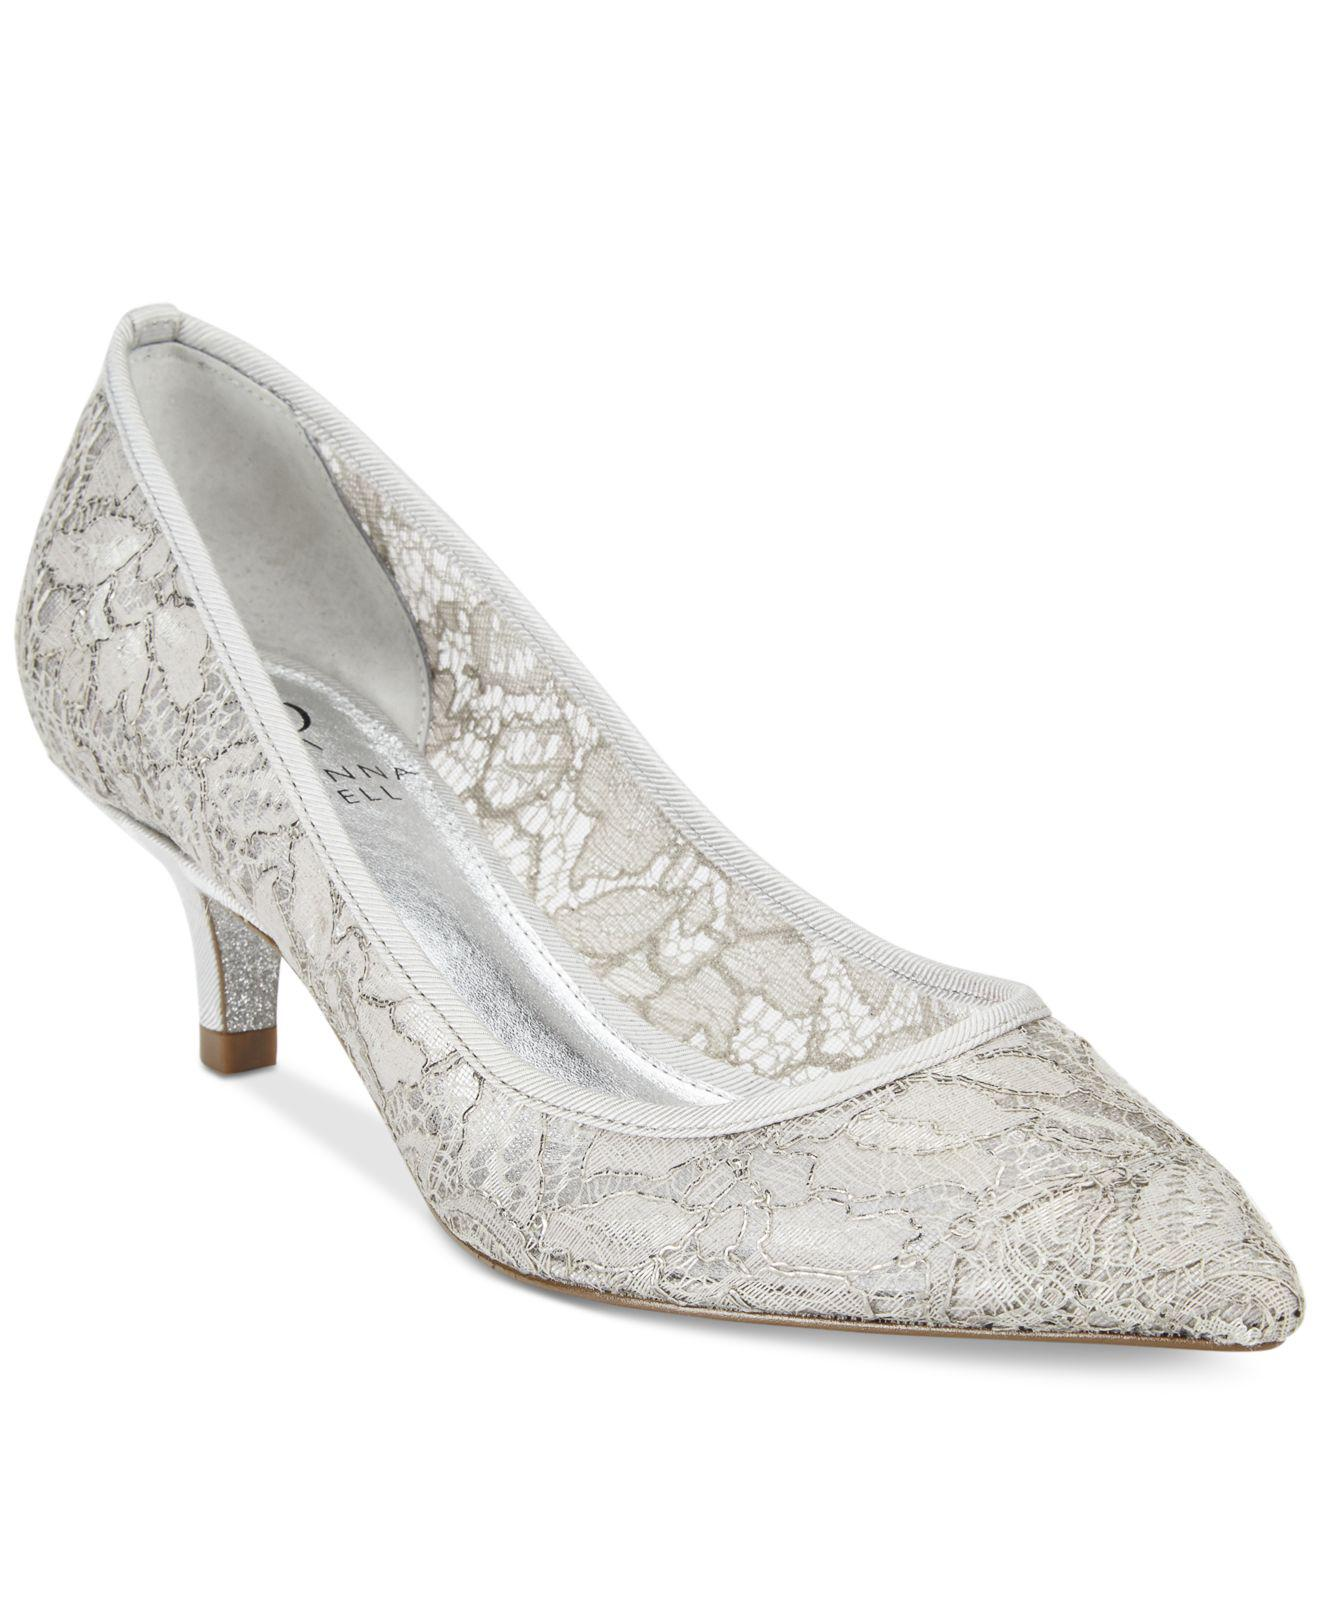 Adrianna Papell Lois Lace Dress Pumps VPddD